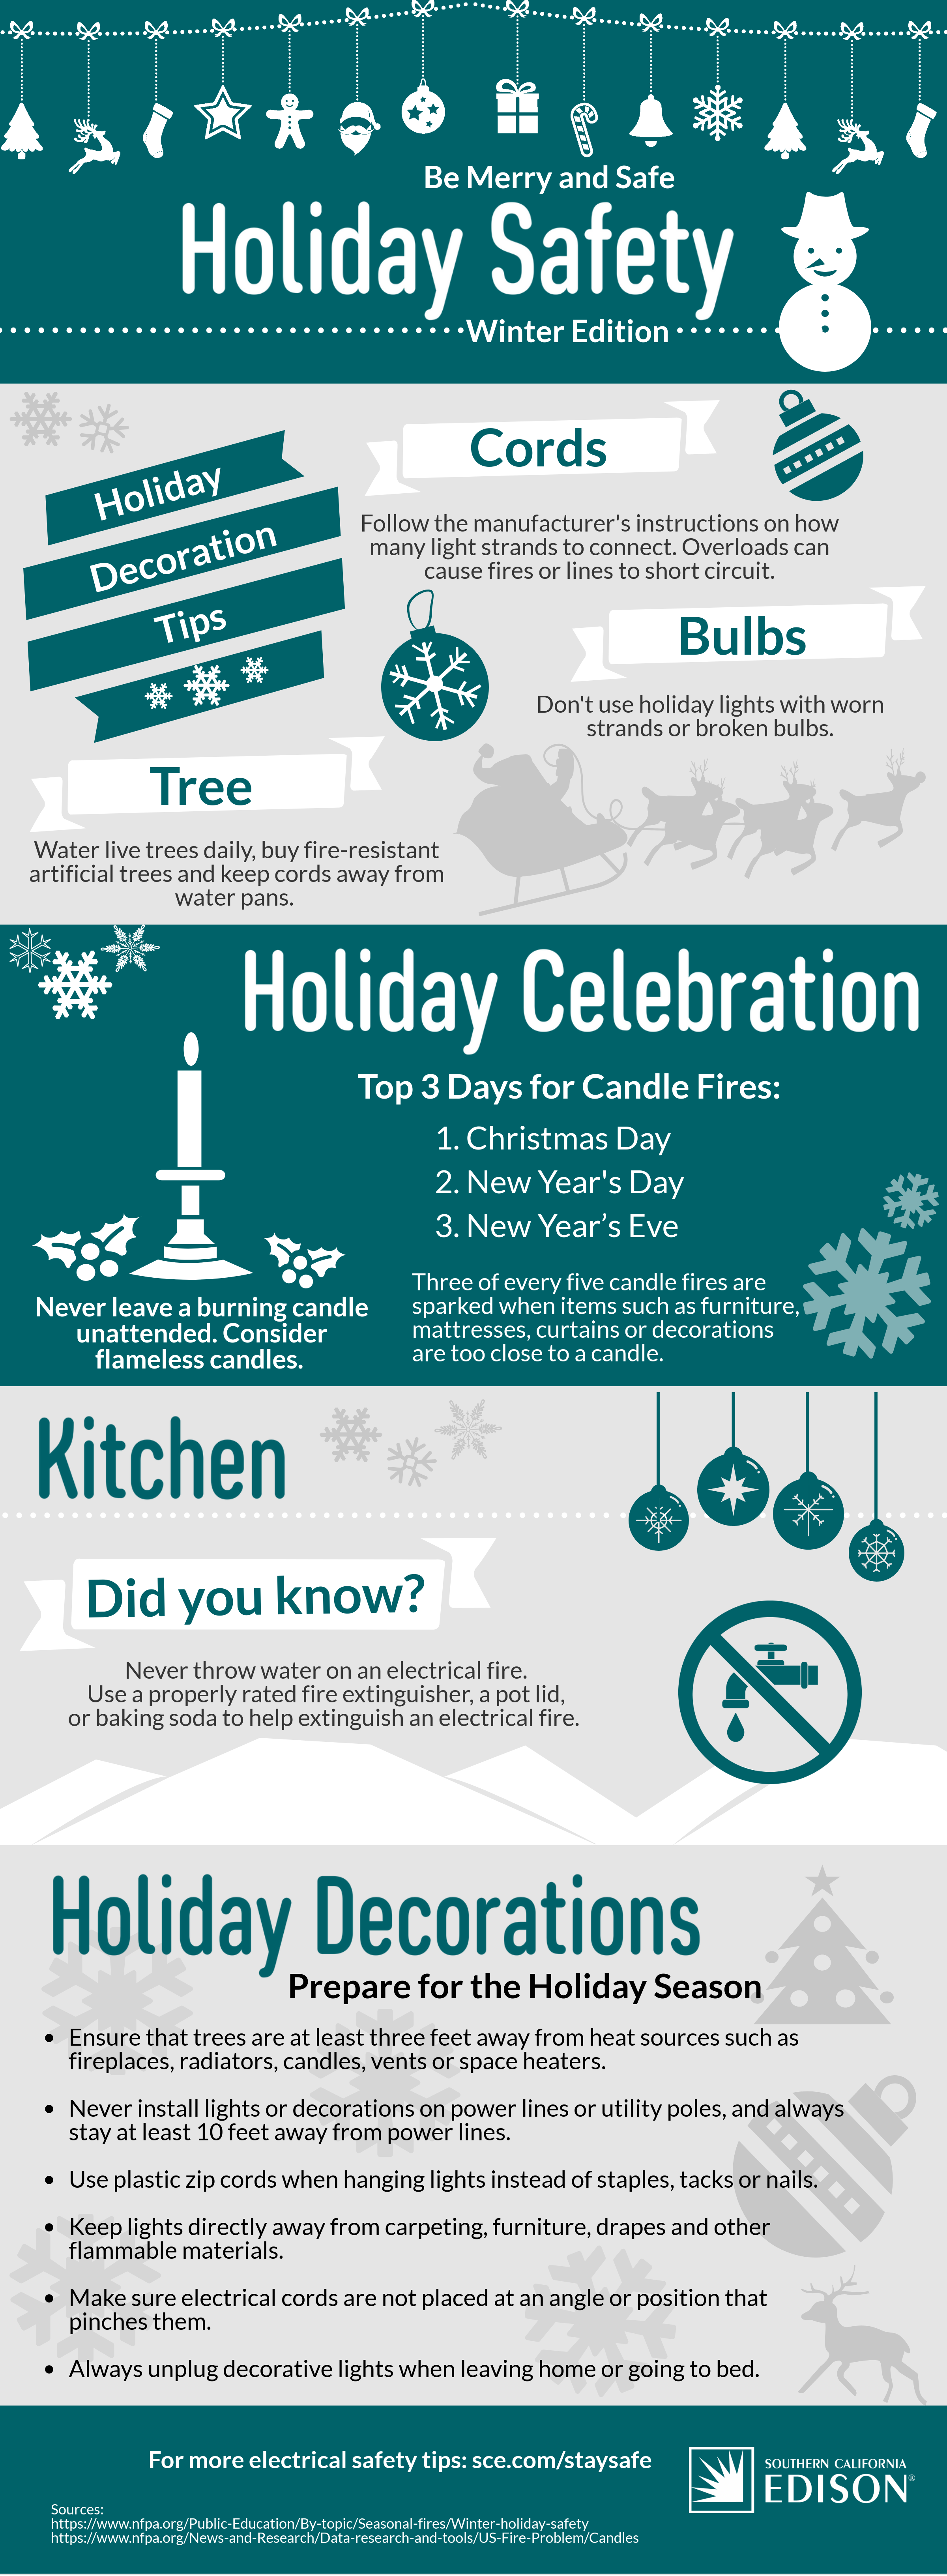 safe-holiday-decorating-infographic-final